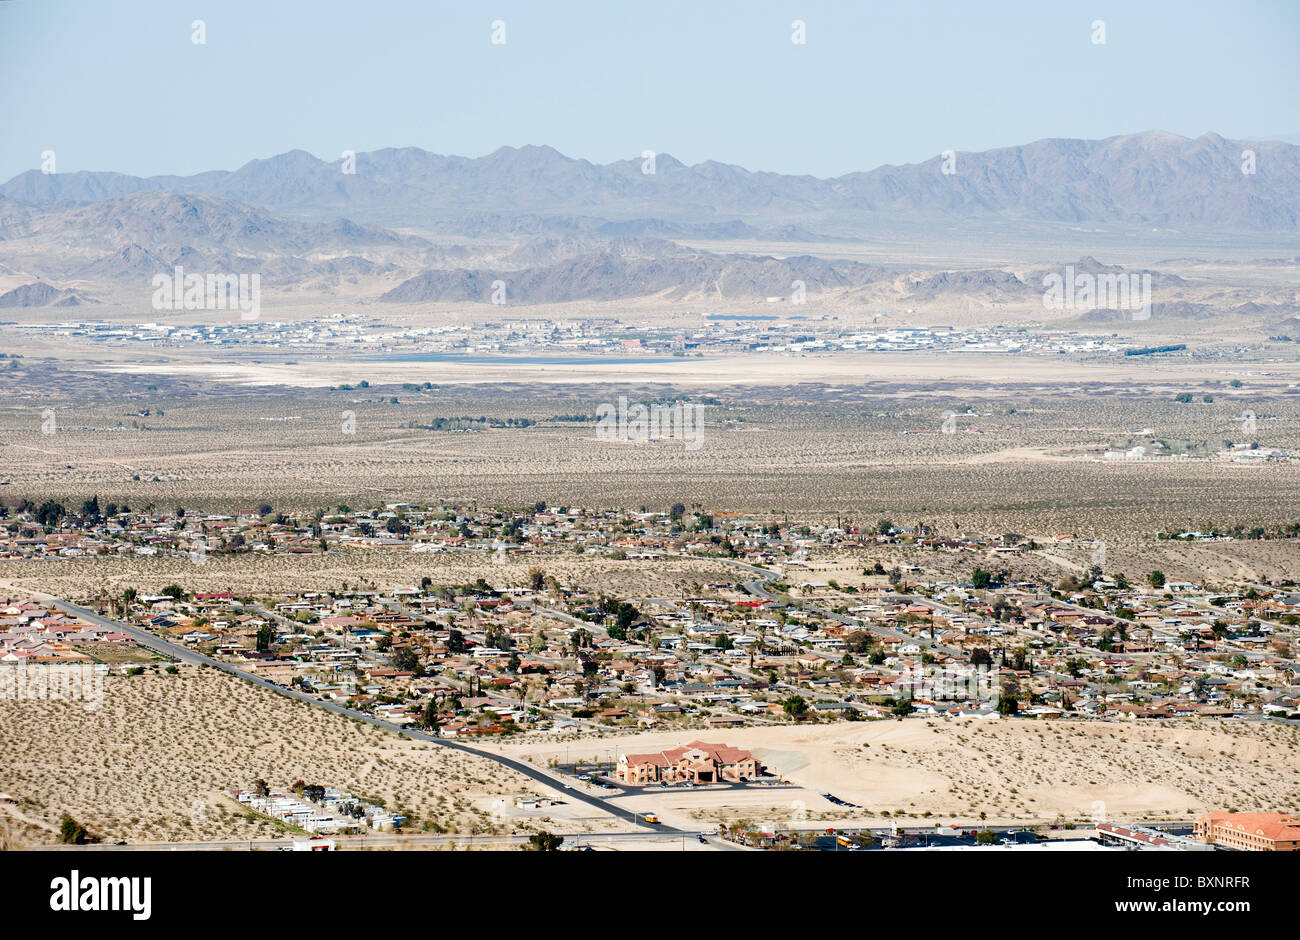 Twentynine Palms Stock Photos & Twentynine Palms Stock